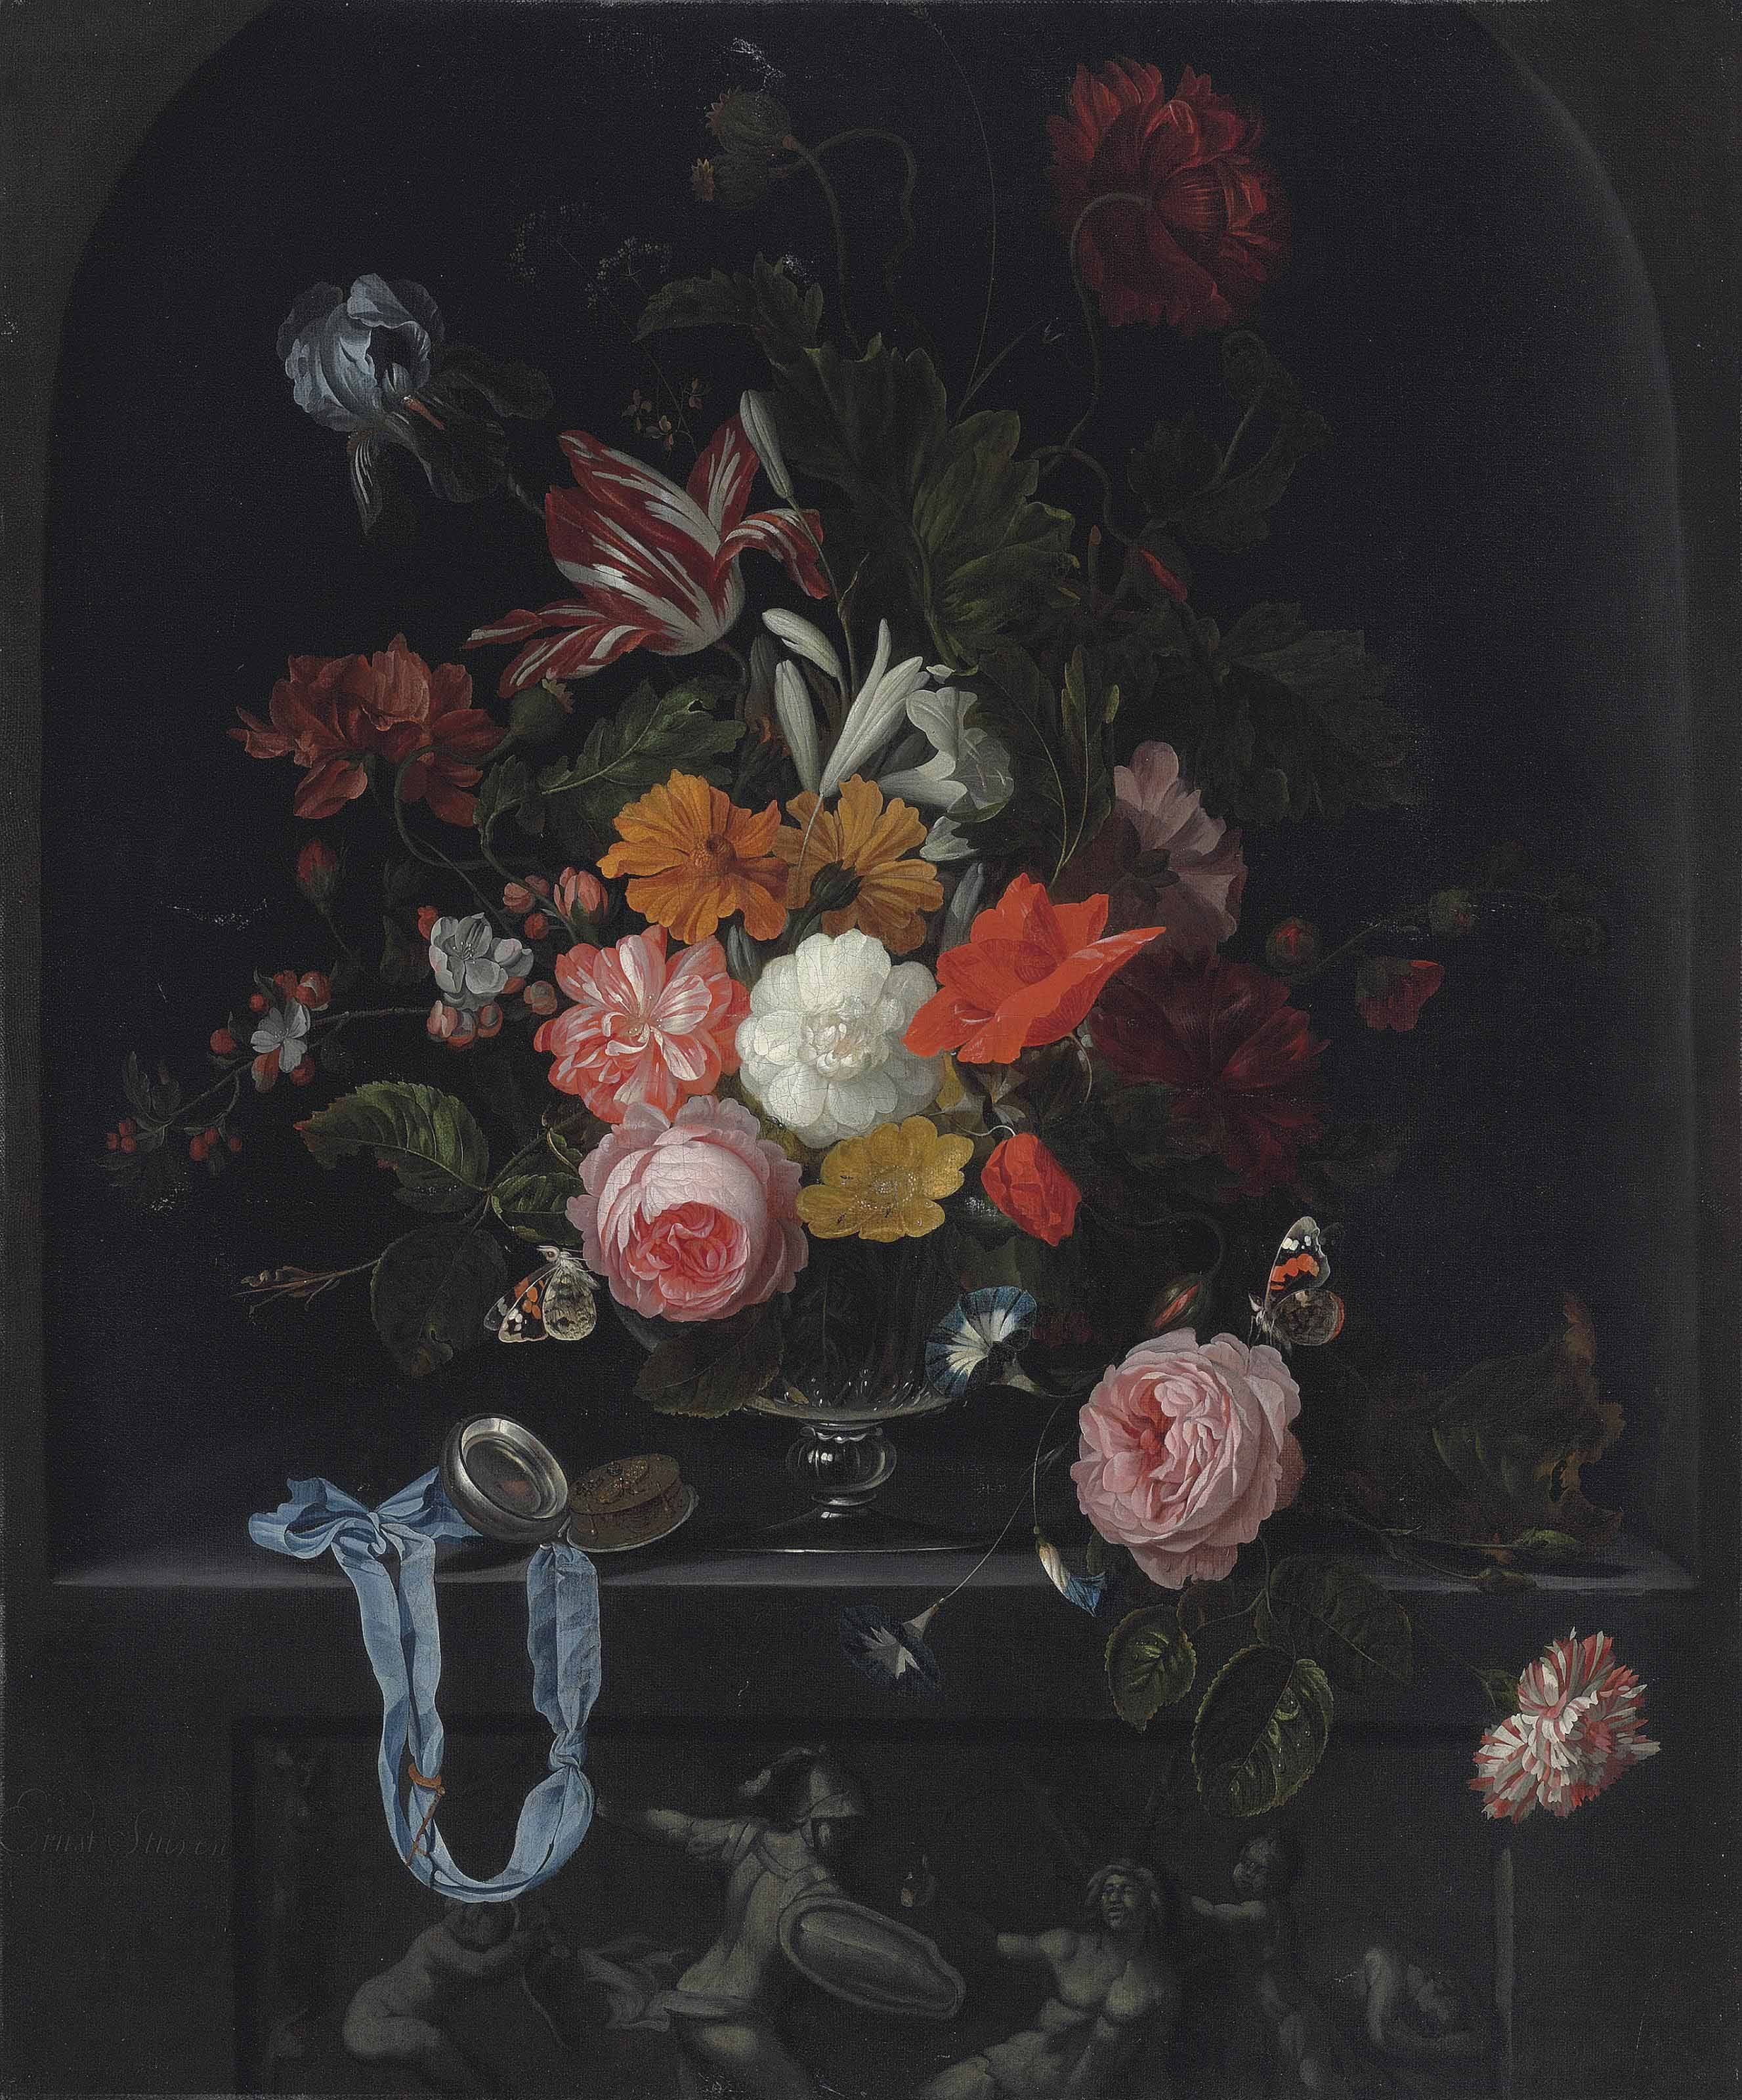 A Semper Augustus tulip, an iris, peonies, cherry blossoms, lilies, roses and other flowers in a glass vase, with butterflies and an open pocket watch on a blue ribbon, in a niche above a classical sculpted low relief